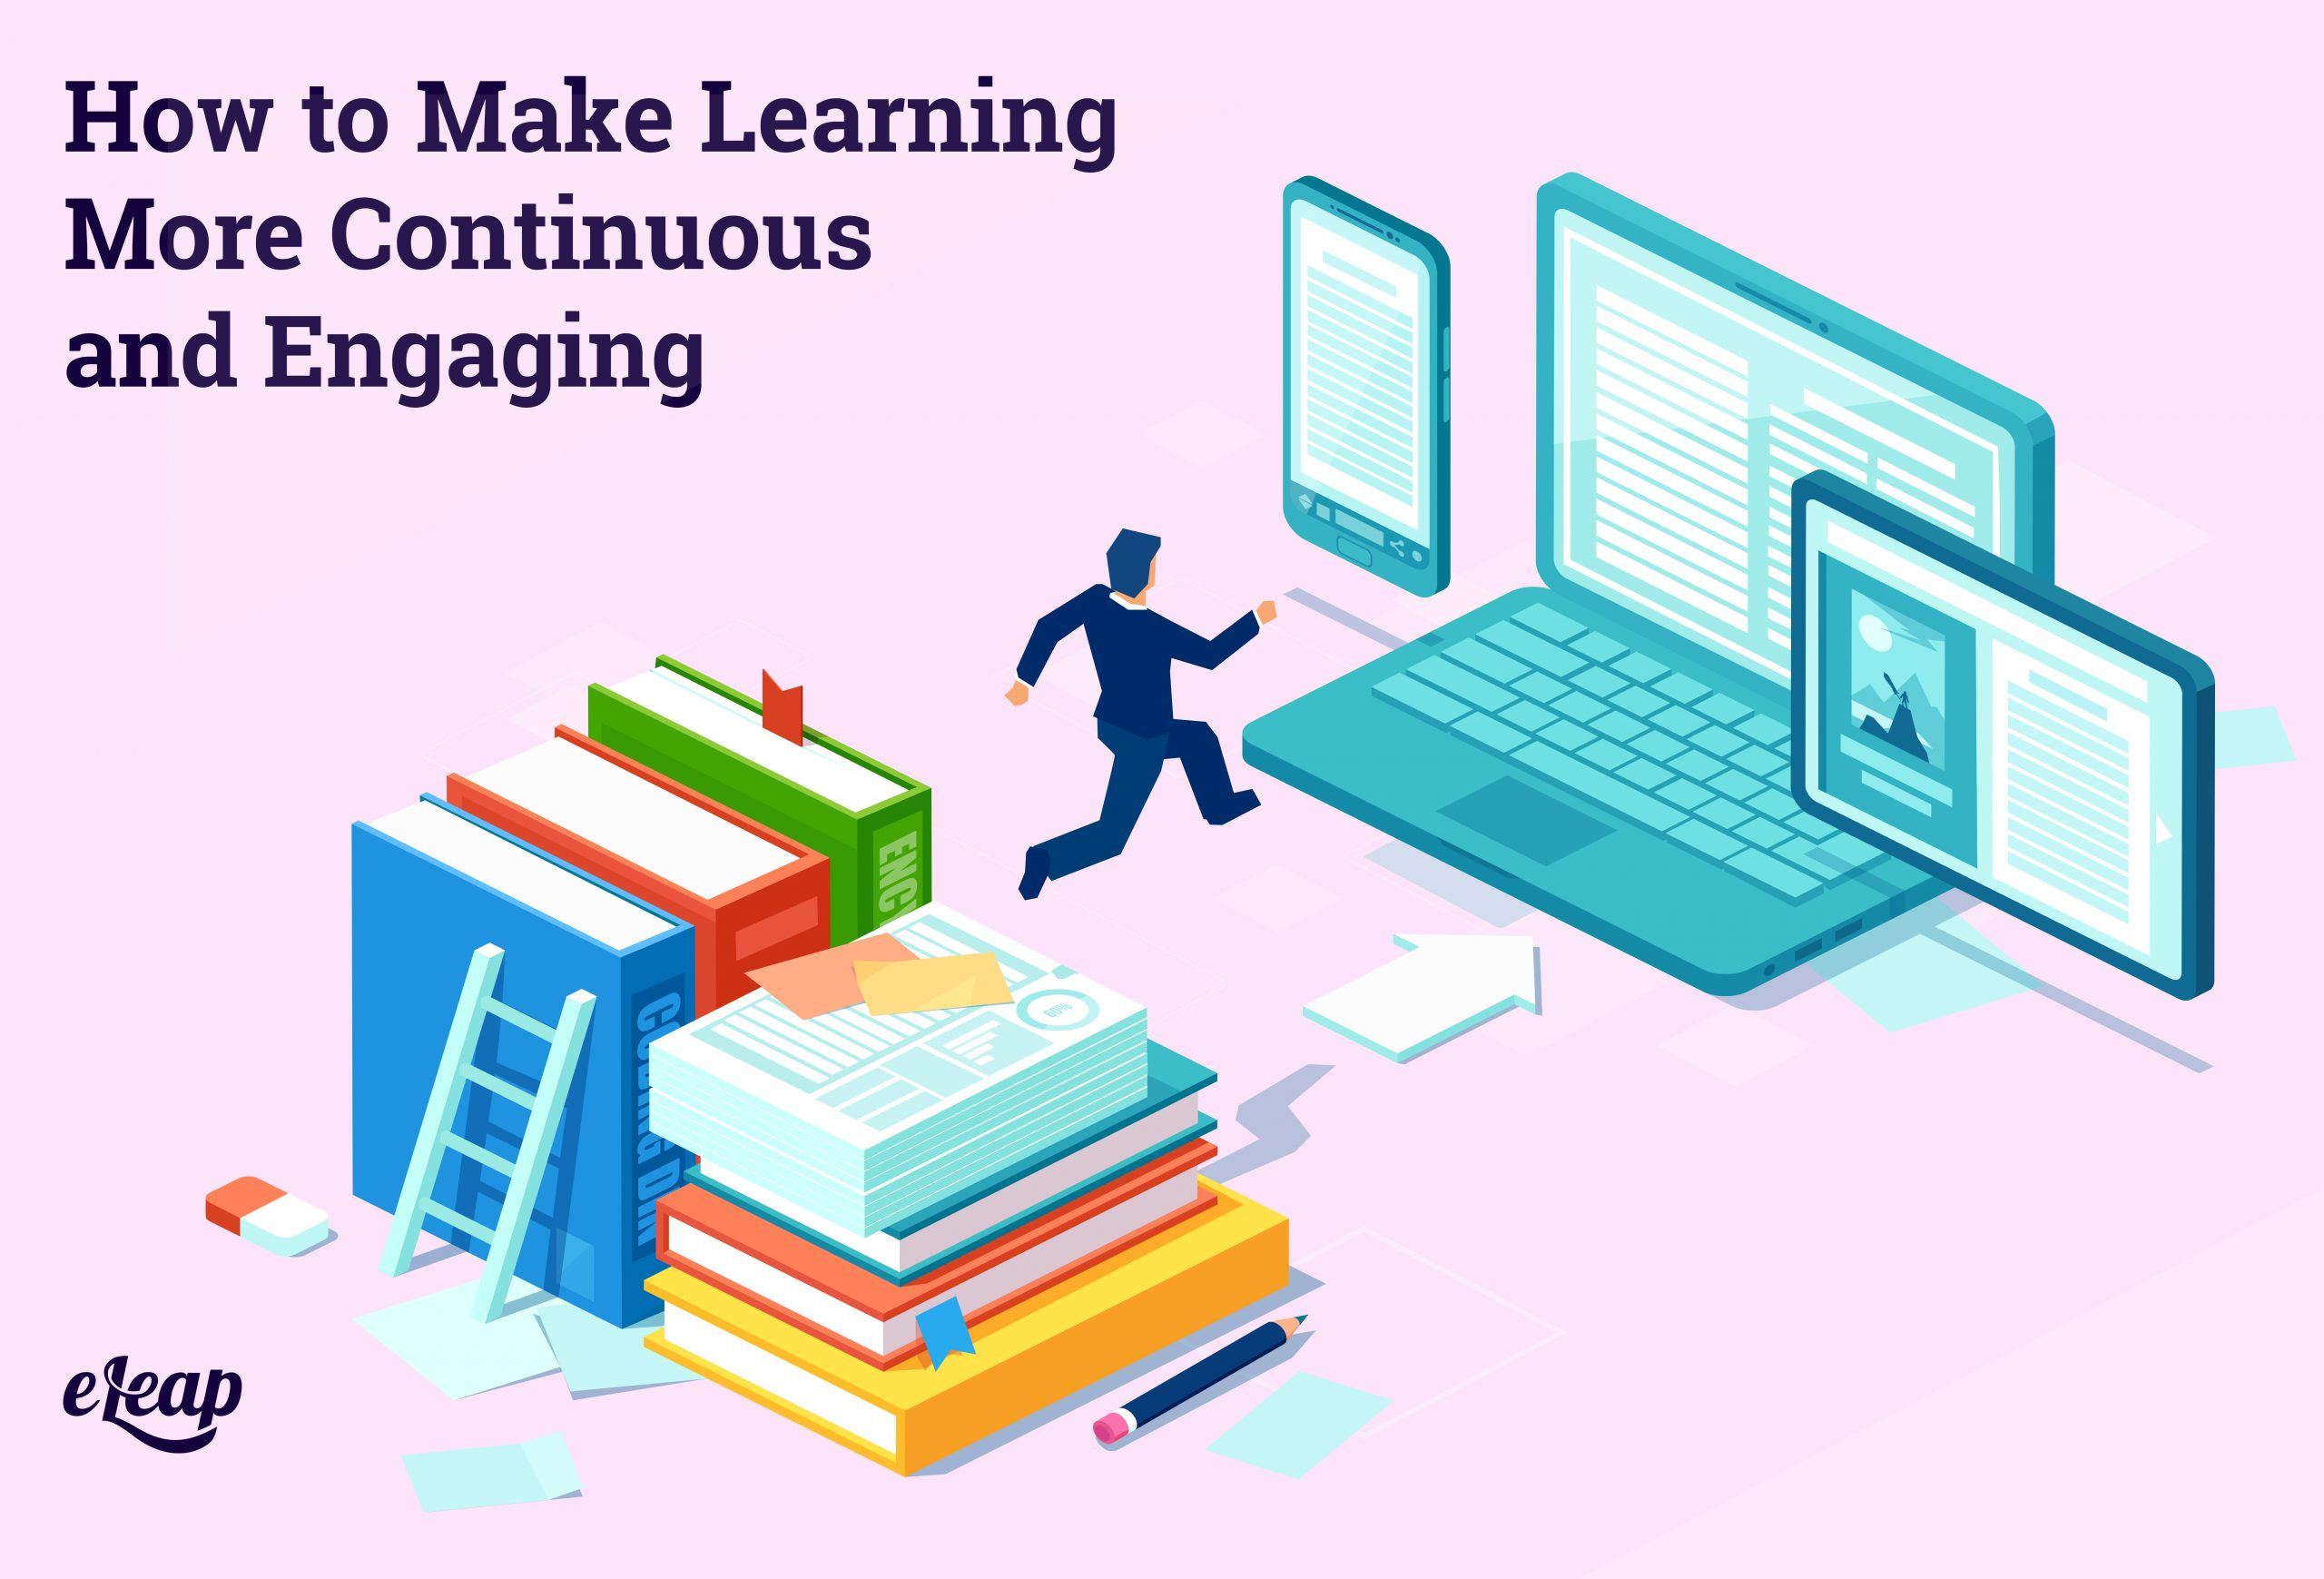 How to Make Learning More Continuous and Engaging